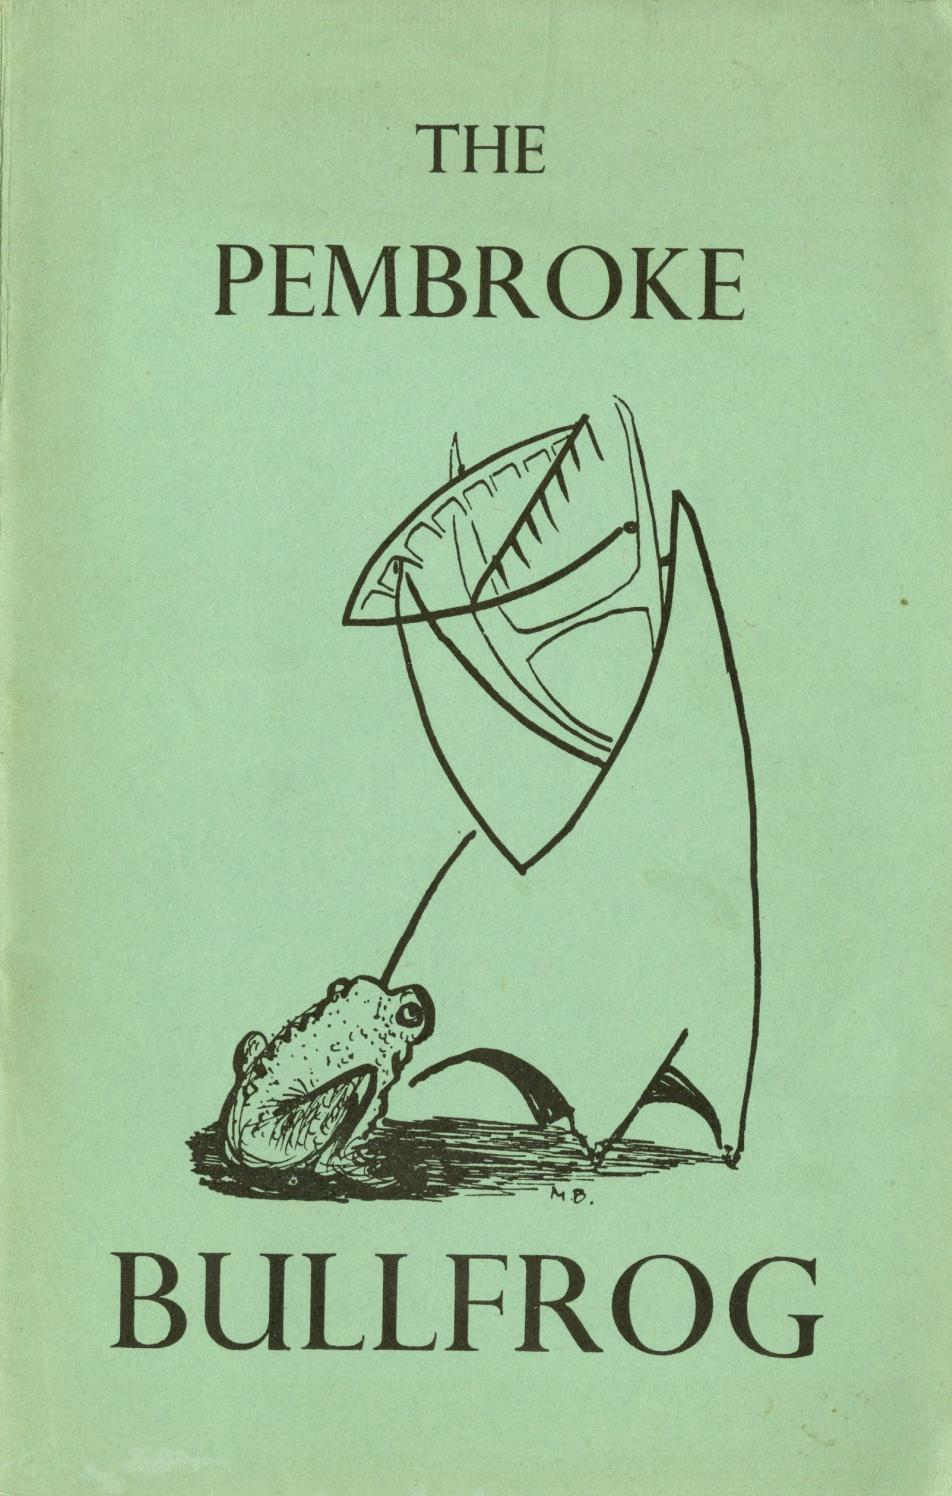 The Pembroke Bullfrog, Issue 5, 1960 by Pembroke College, Oxford - issuu